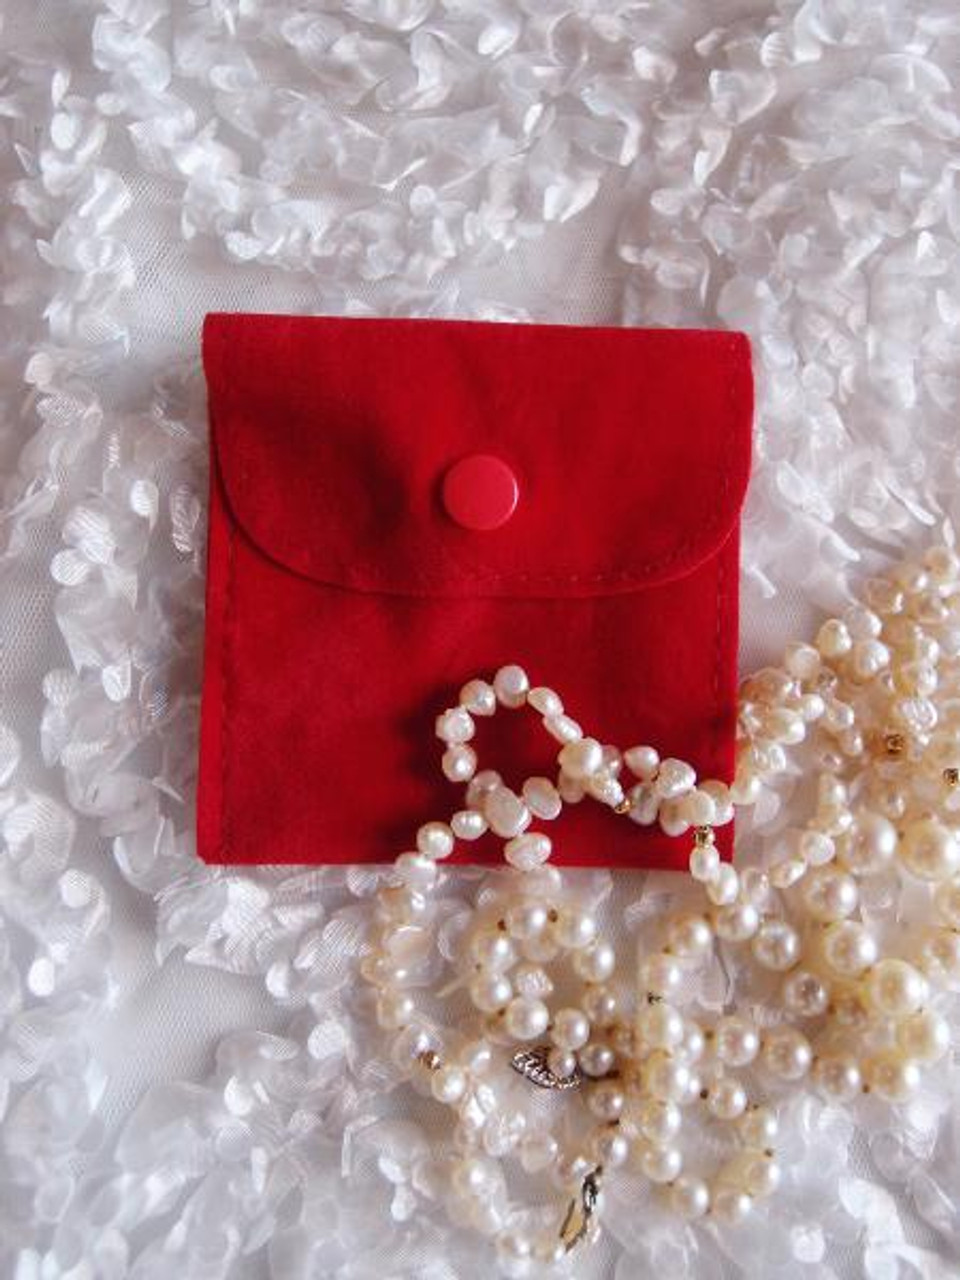 Red Velvet Jewelry Pouch with Snap Fastener 3 x 3 inches, J134-12 | Packaging Decor